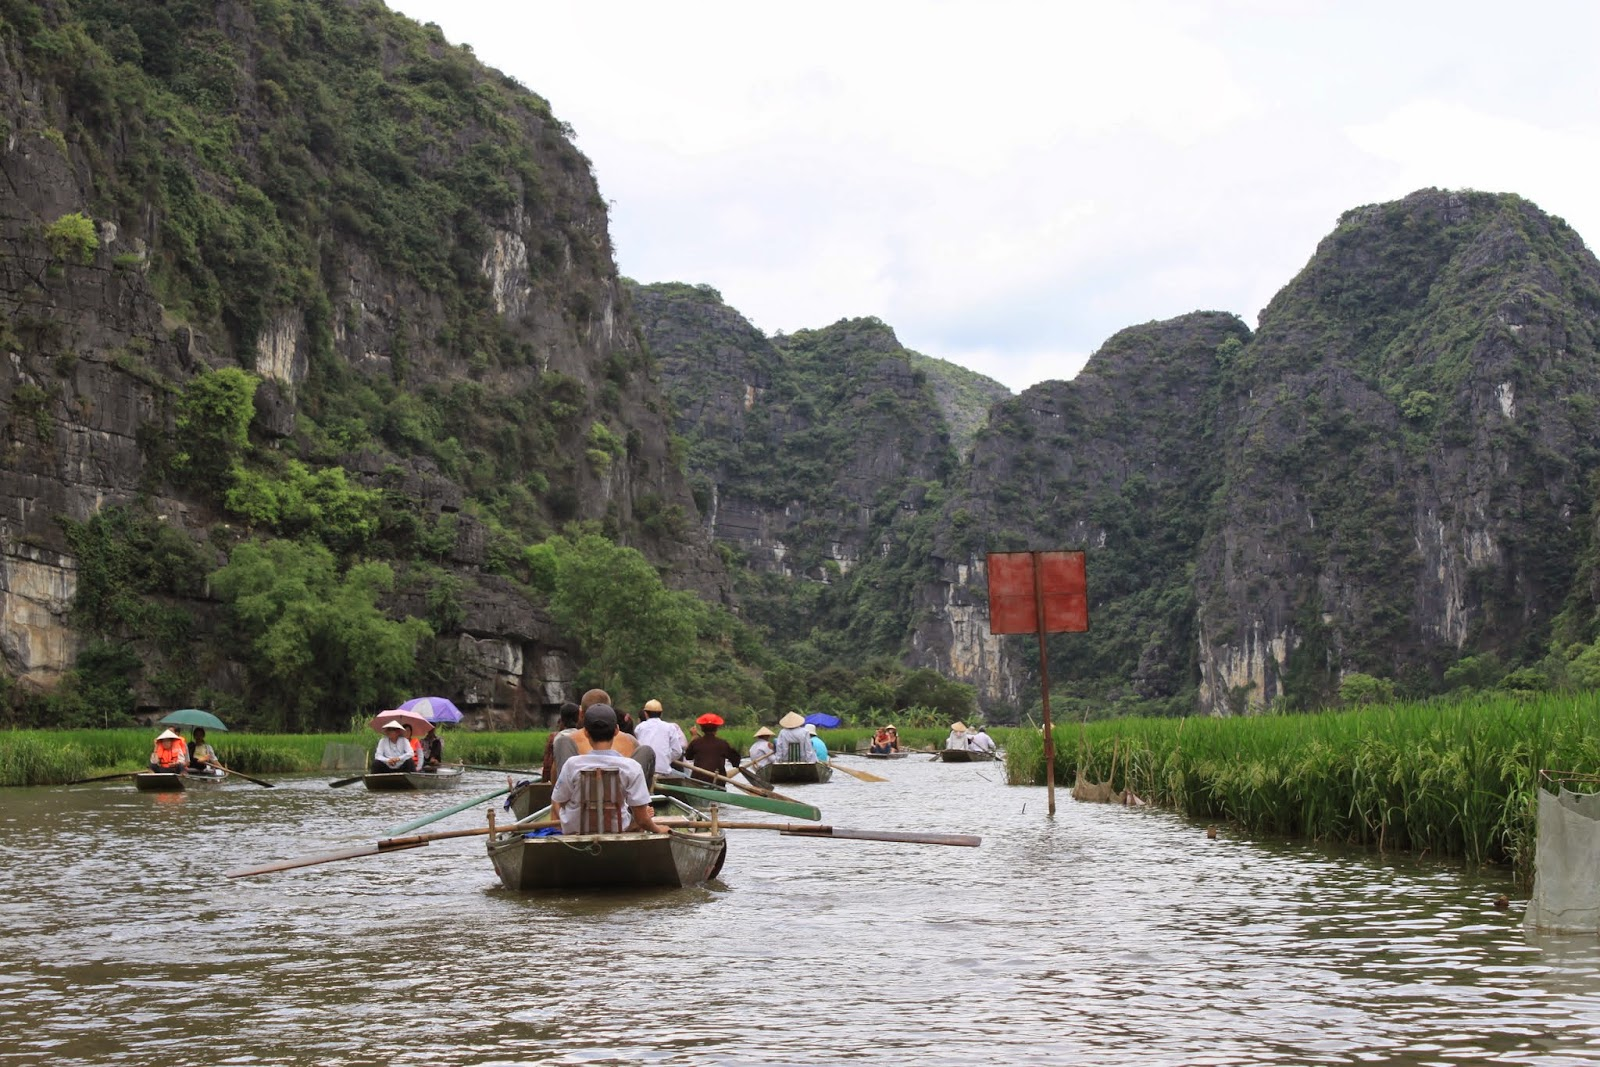 My favourite photo with magnificent natural landscape scenery over the rock formation on mountains and  rice paddies along Ngo Dong river at Tam Coc, Ninh Bình city in Vietnam